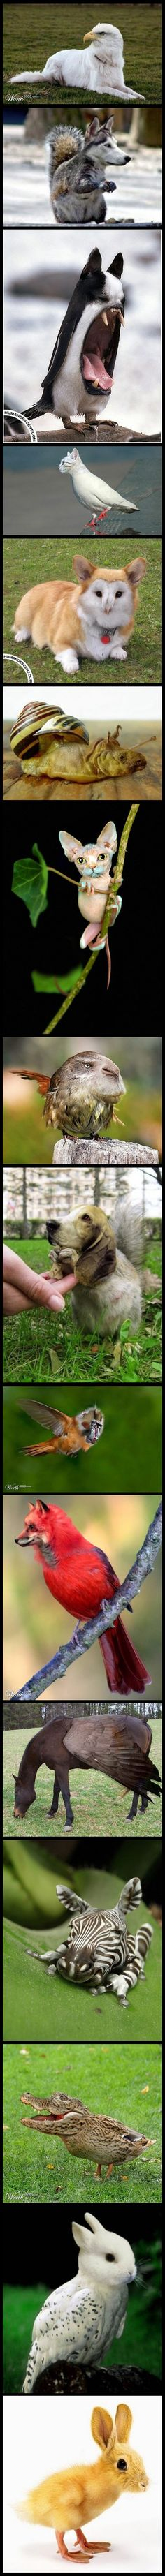 best perfect images on pinterest beautiful people doggies and